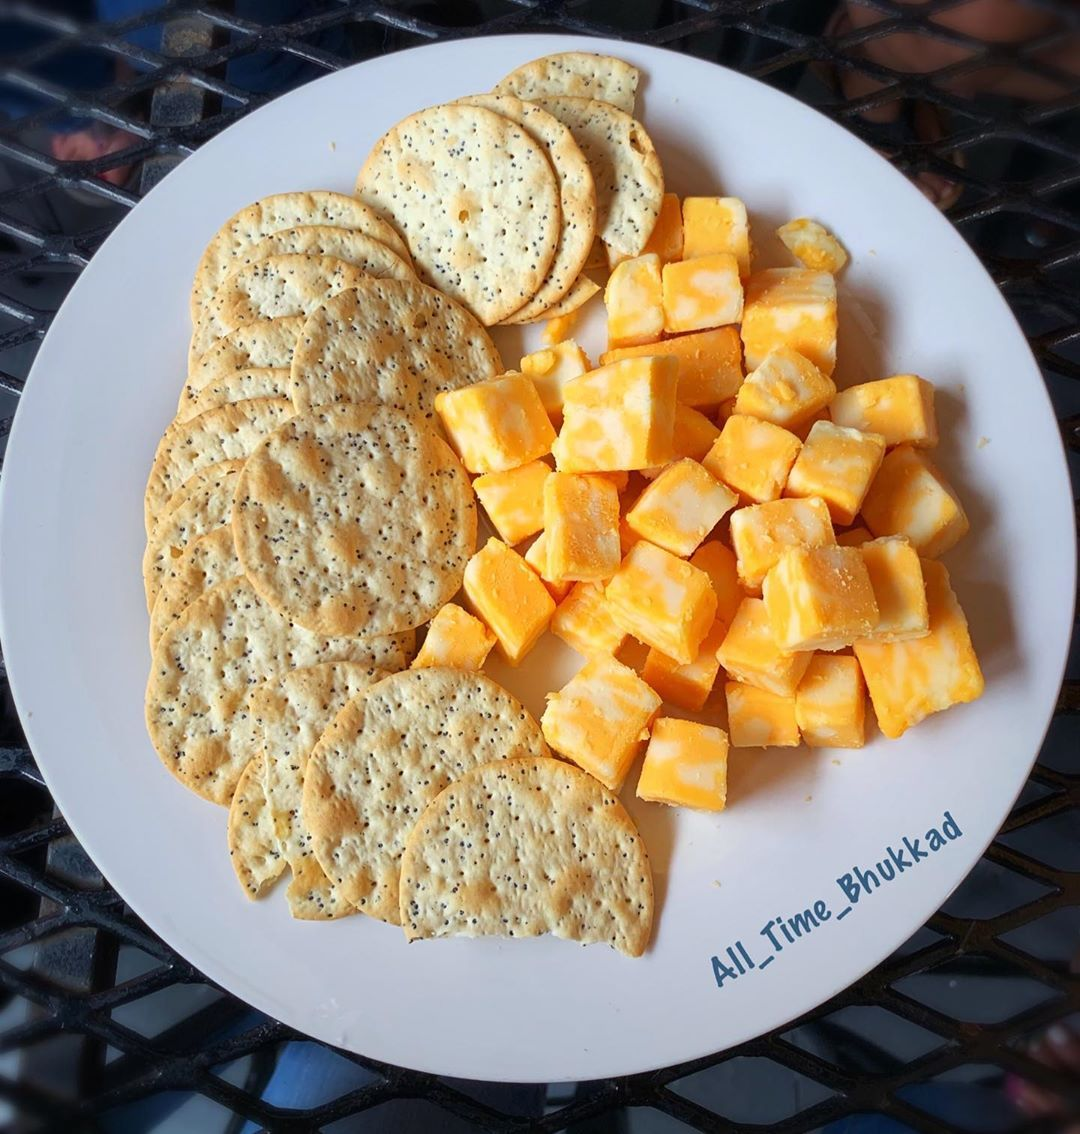 This is what Sunday evening looks like. You have the plate full of cheese but you want a melted cheese not the cold cubes 🙄🙄🙄 . In plate: Cheese and crackers from @archstreettavern .